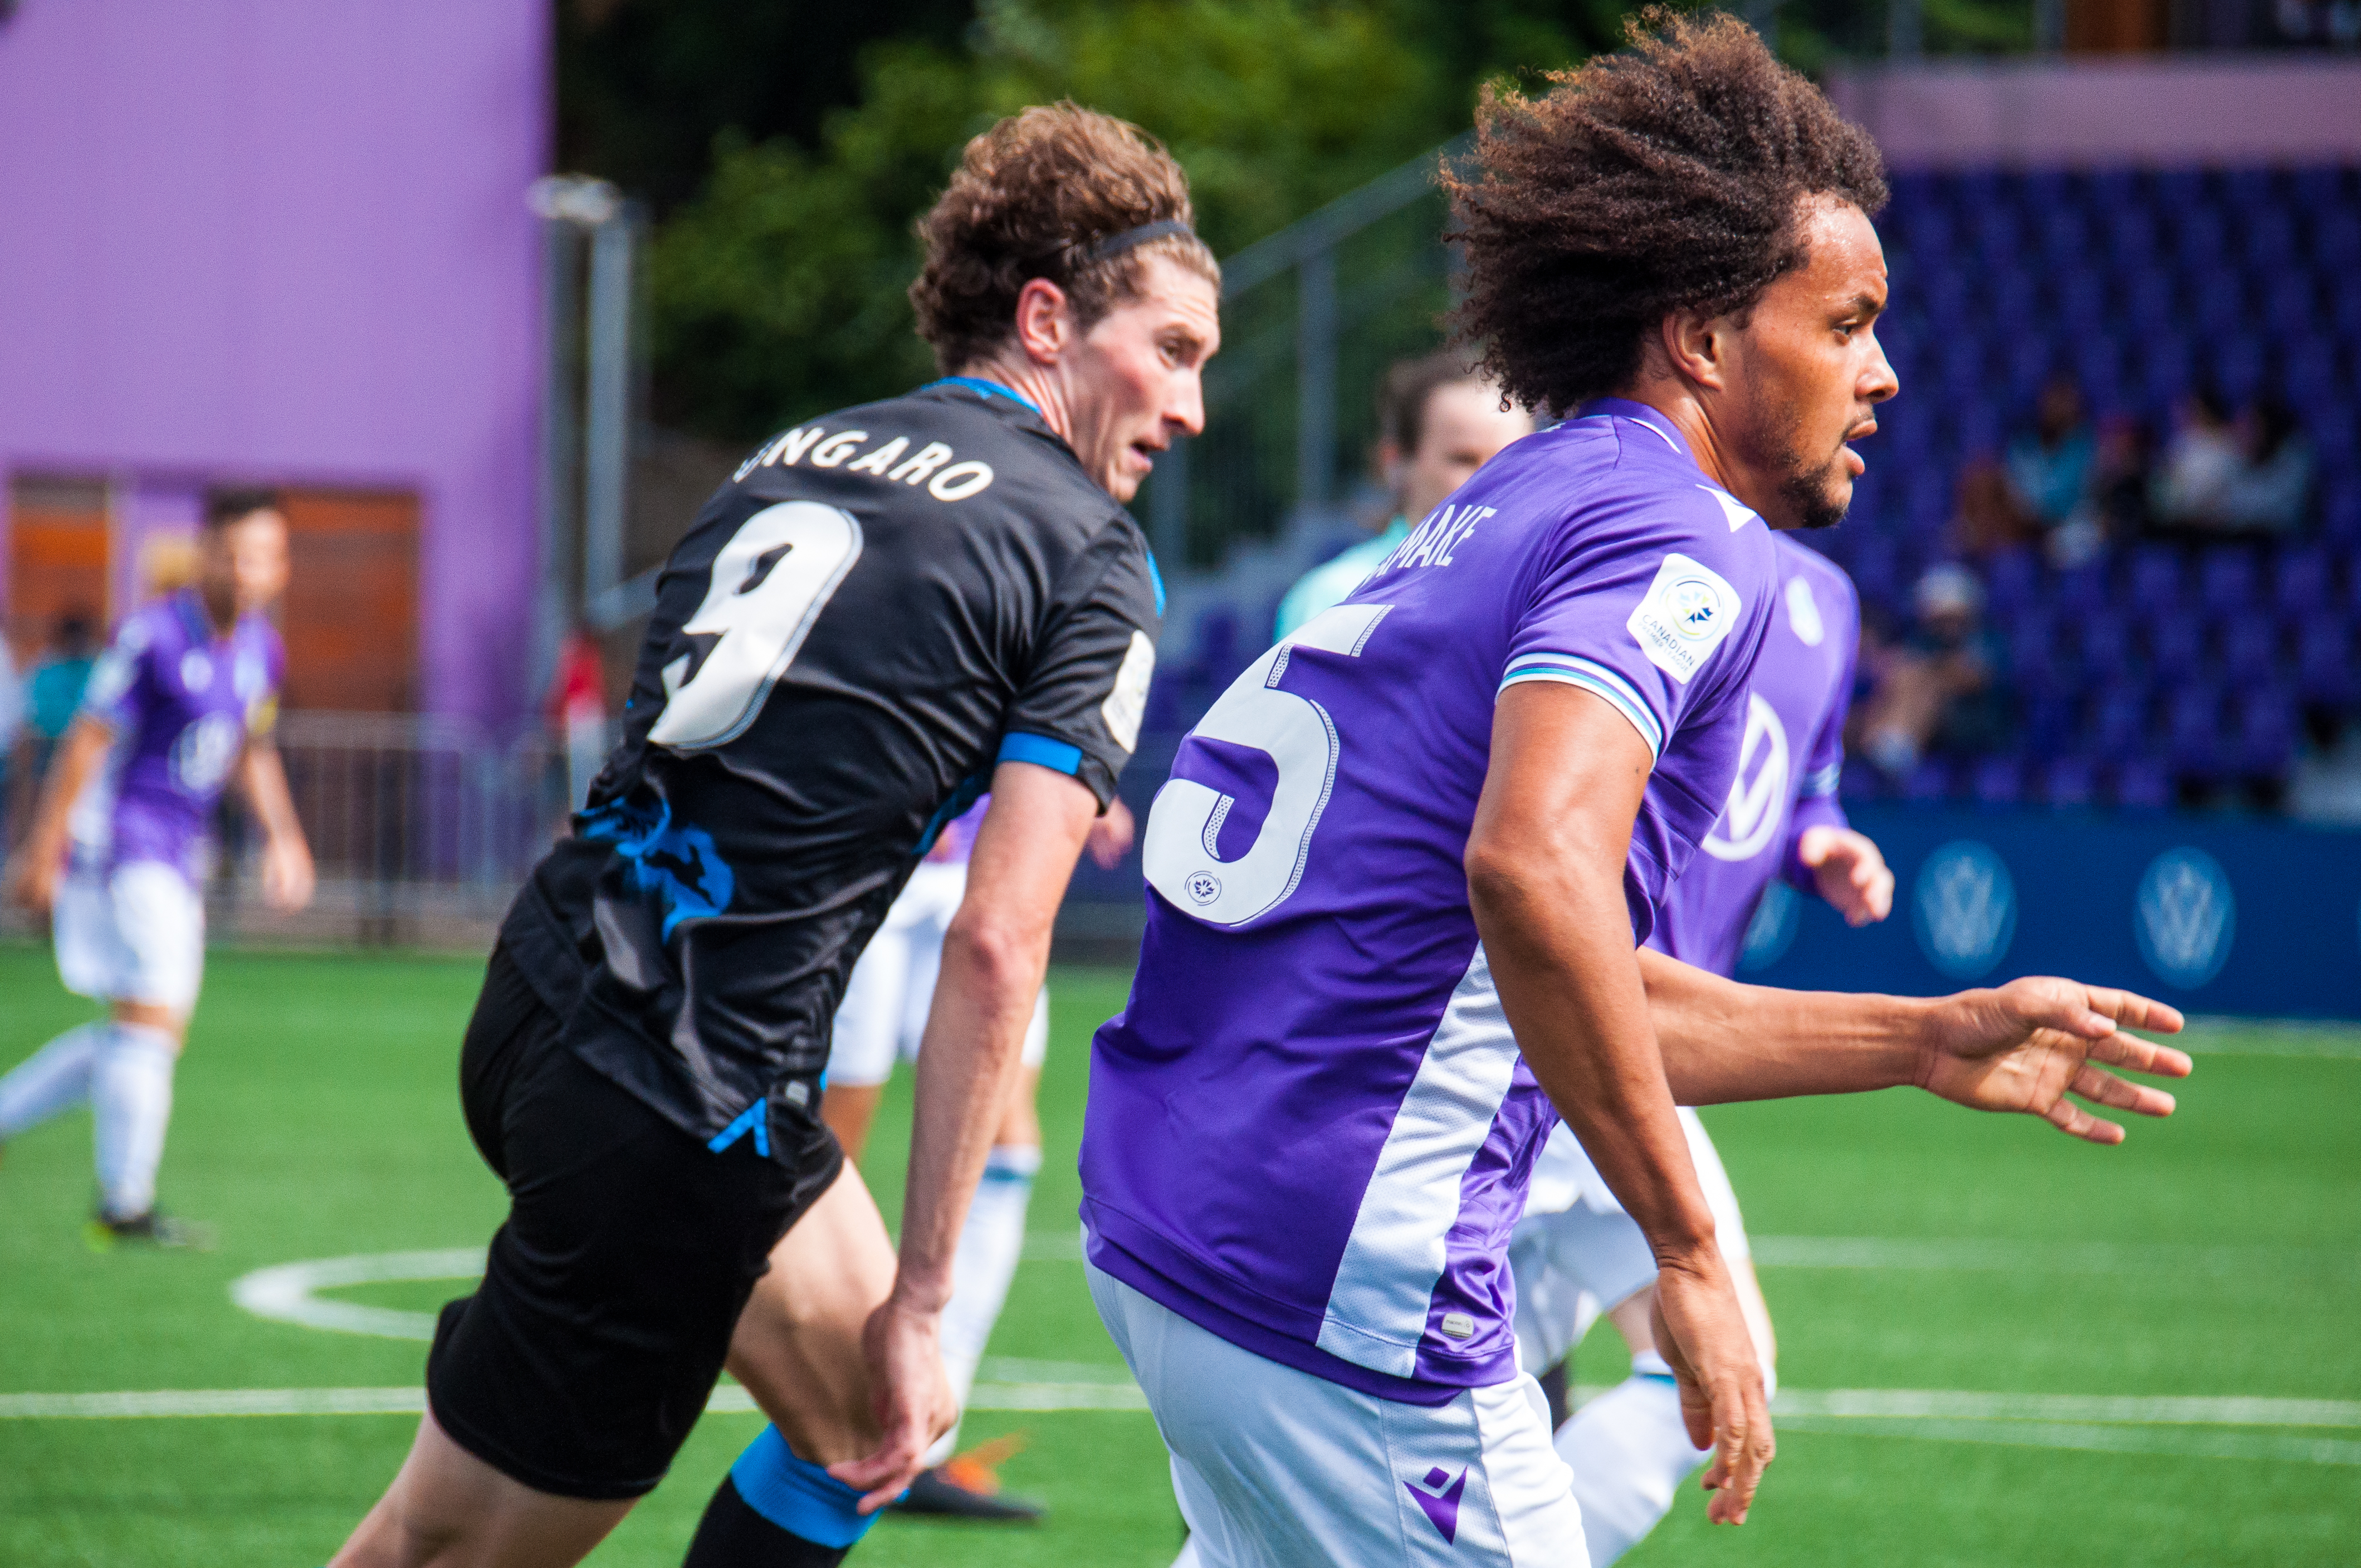 Pacific FC's Abdou Samake chases the ball alongside Easton Ongaro. (CPL)